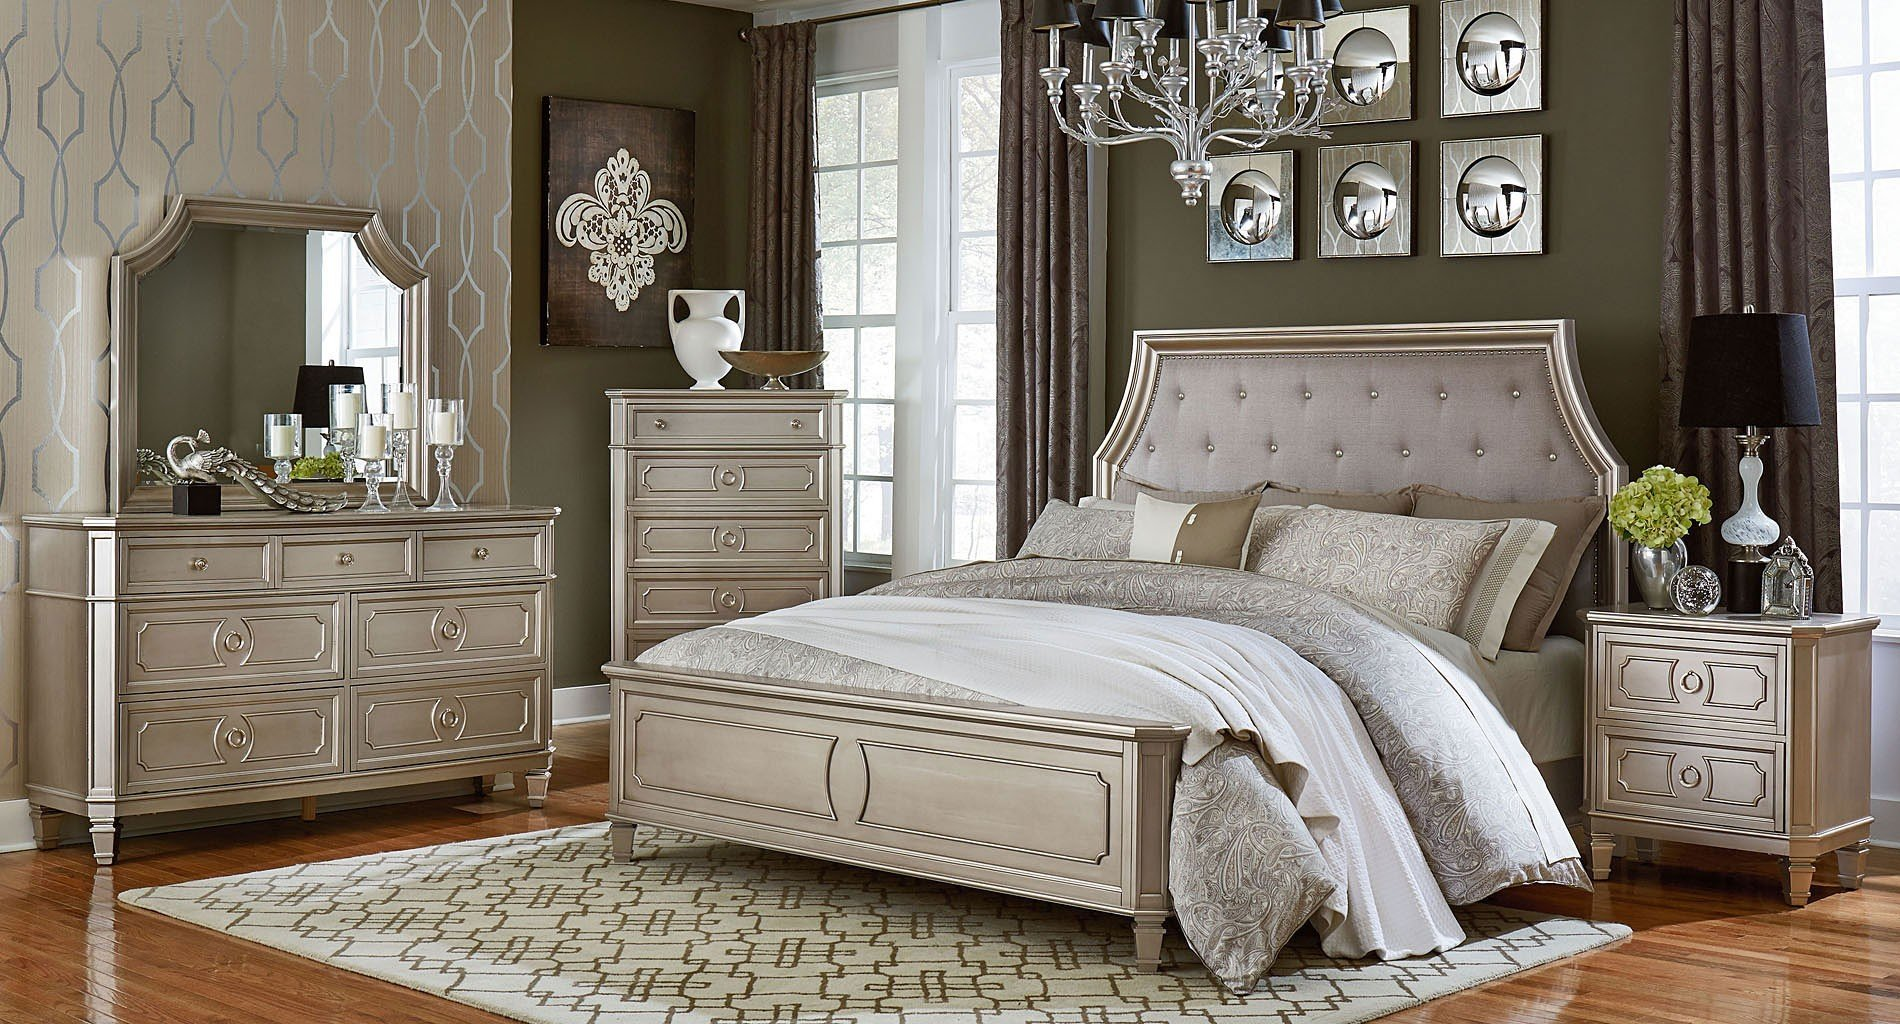 Picture of: Silver Bedroom Set Ideas